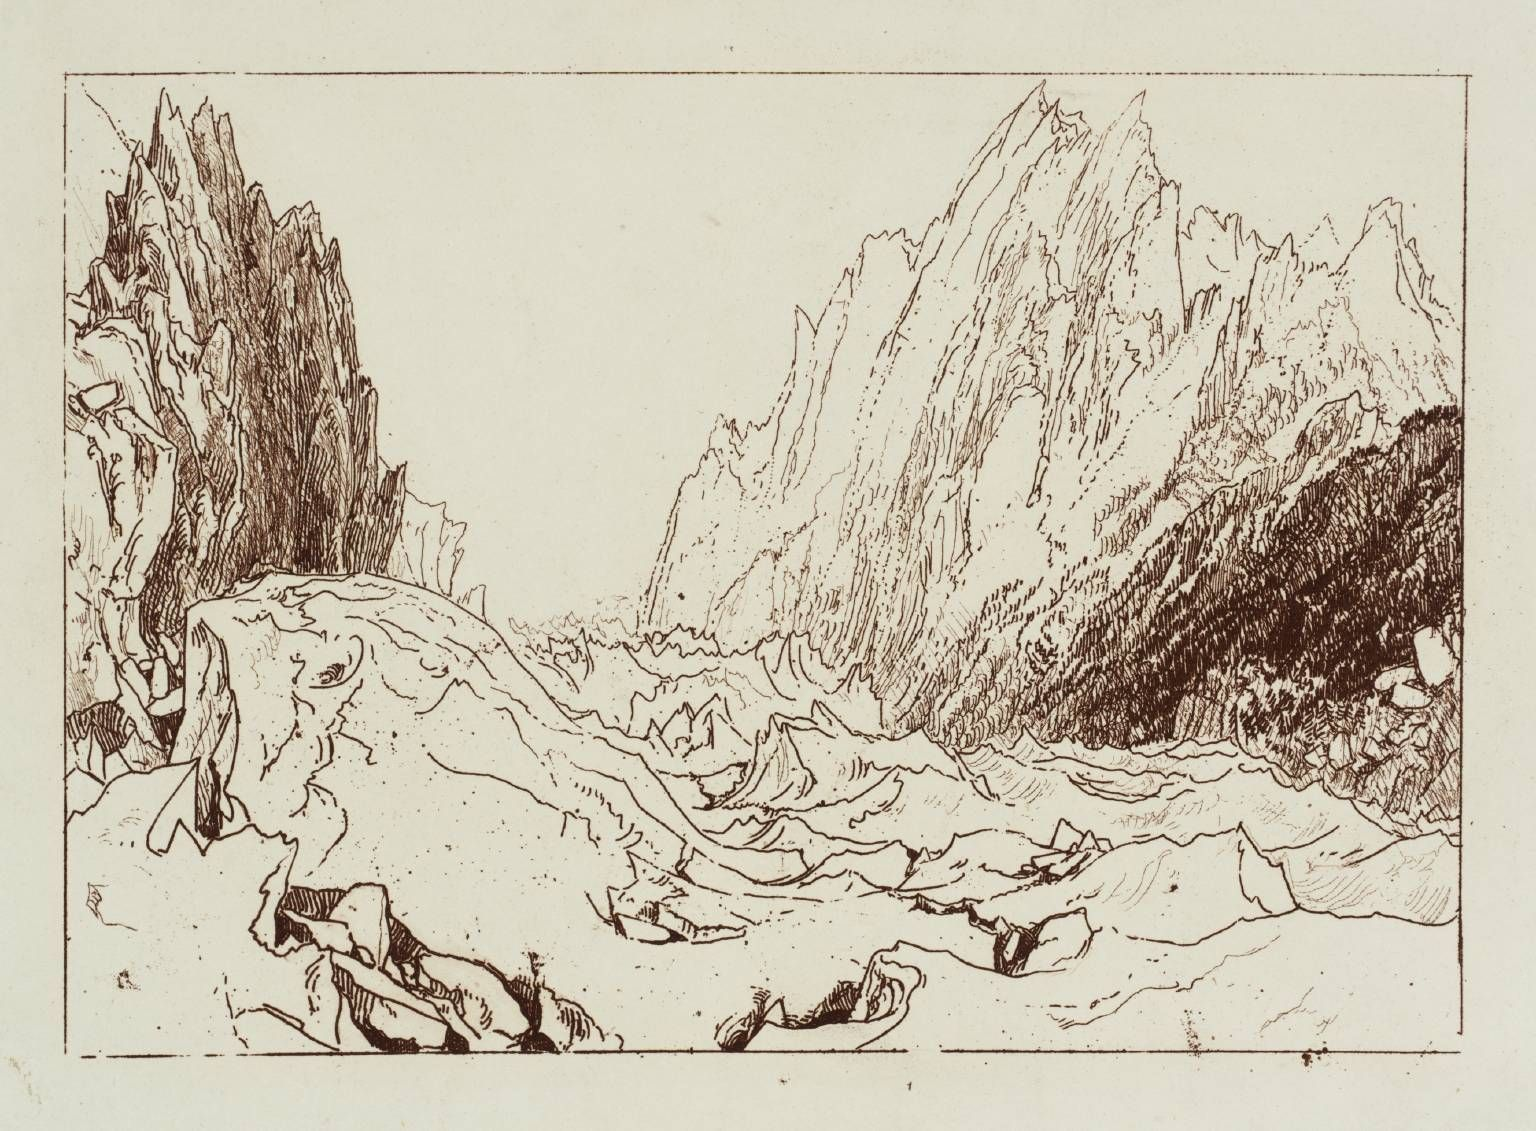 Joseph Mallord William Turner (1775‑1851) - 'Mer de Glace', 1812, Etching and engraving on paper.